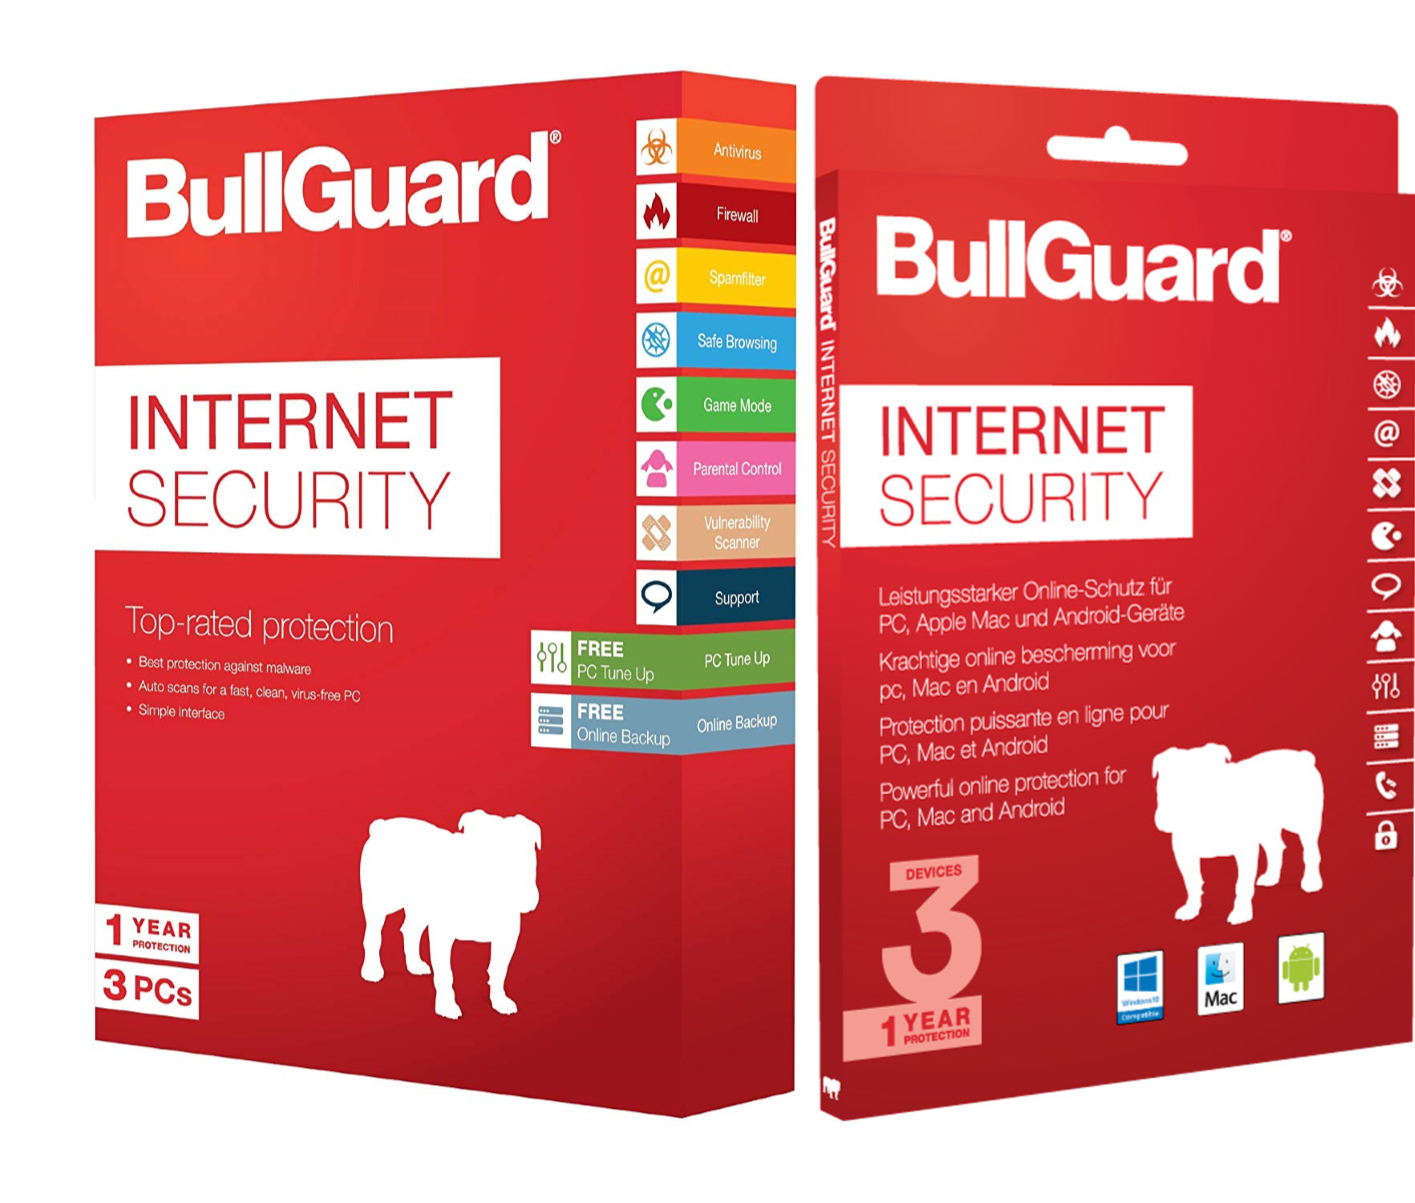 Both Bullguard Products.png